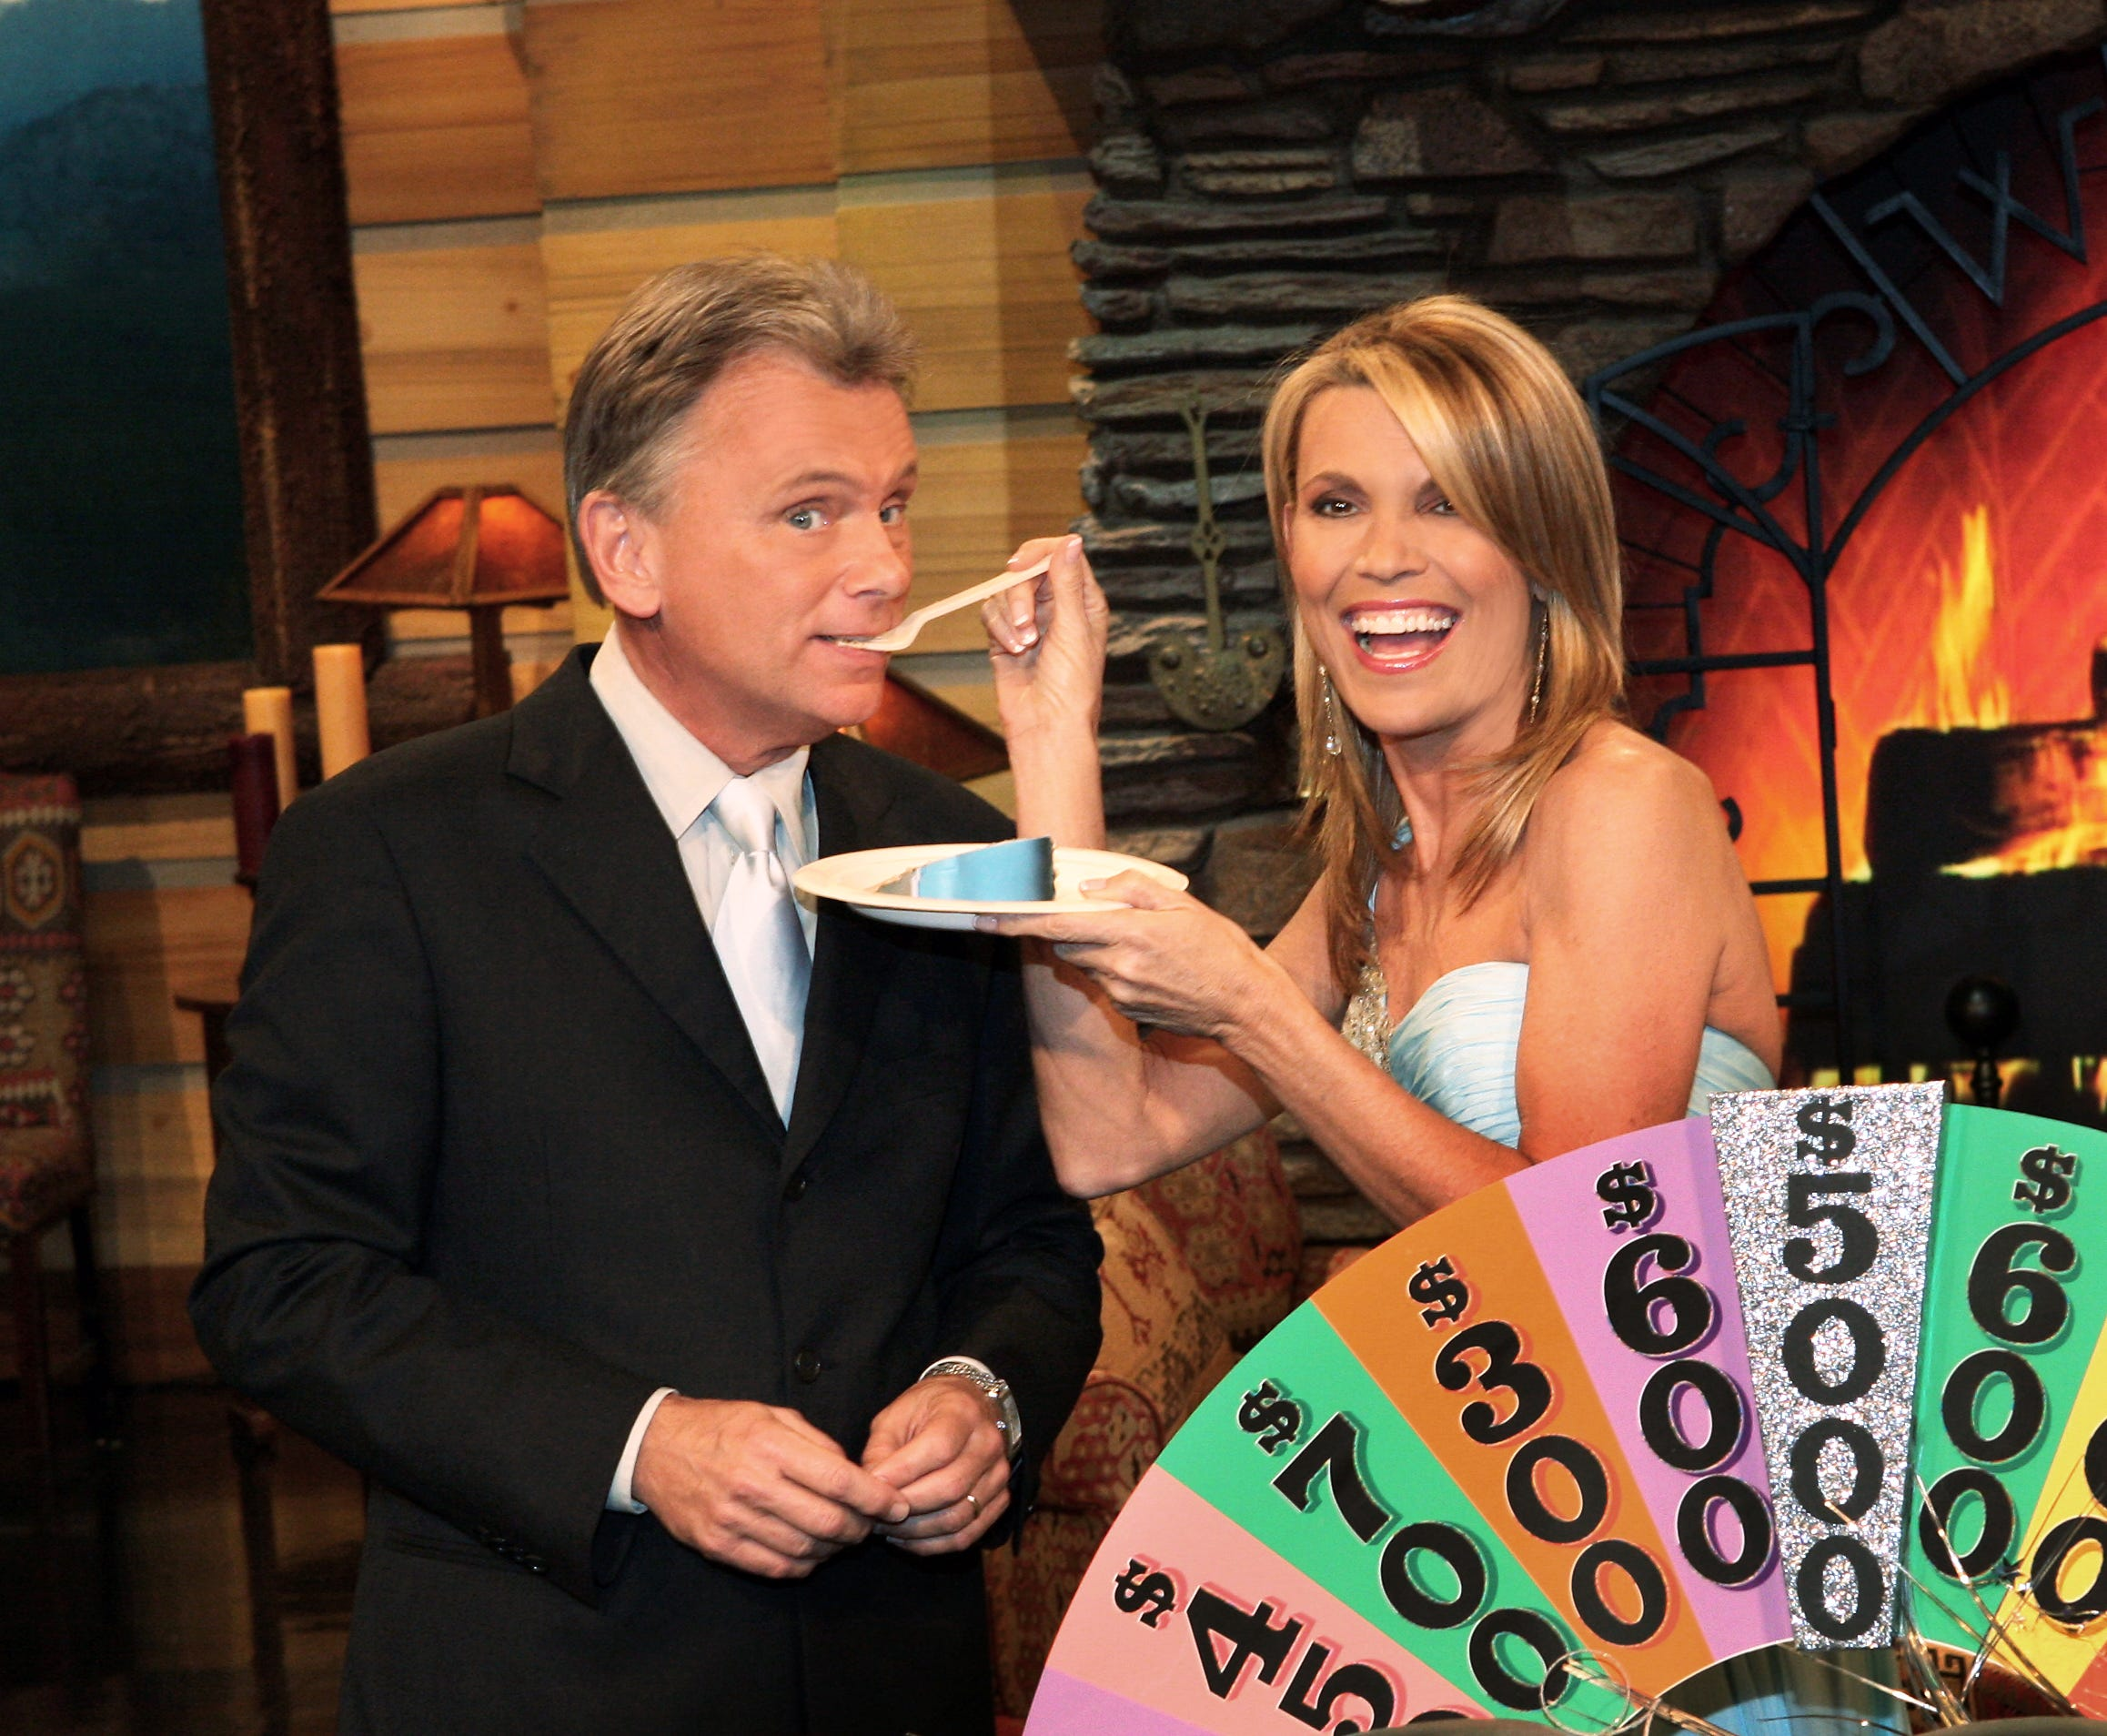 Vanna White Says Wheel Of Fortune Fans Helped In Times Of Tragedy